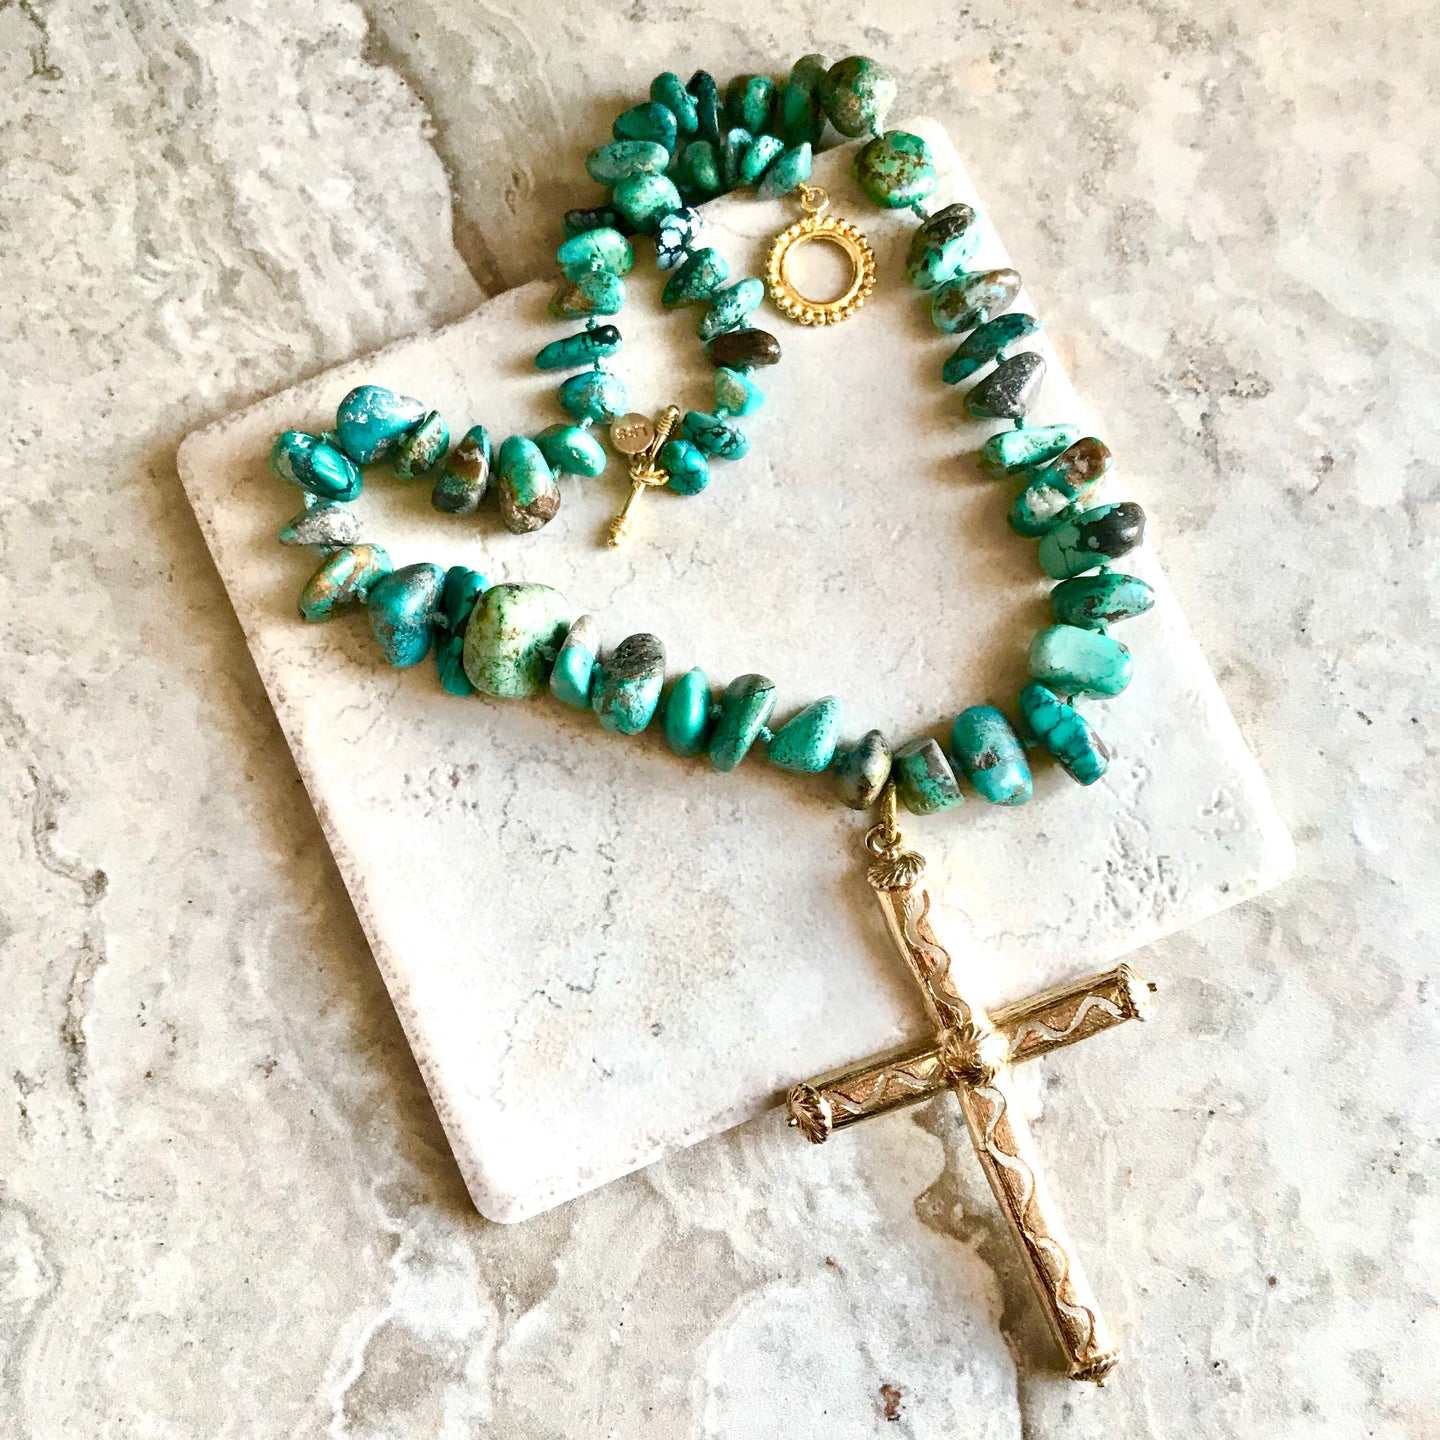 Turquoise Chunks with Vintage Cross